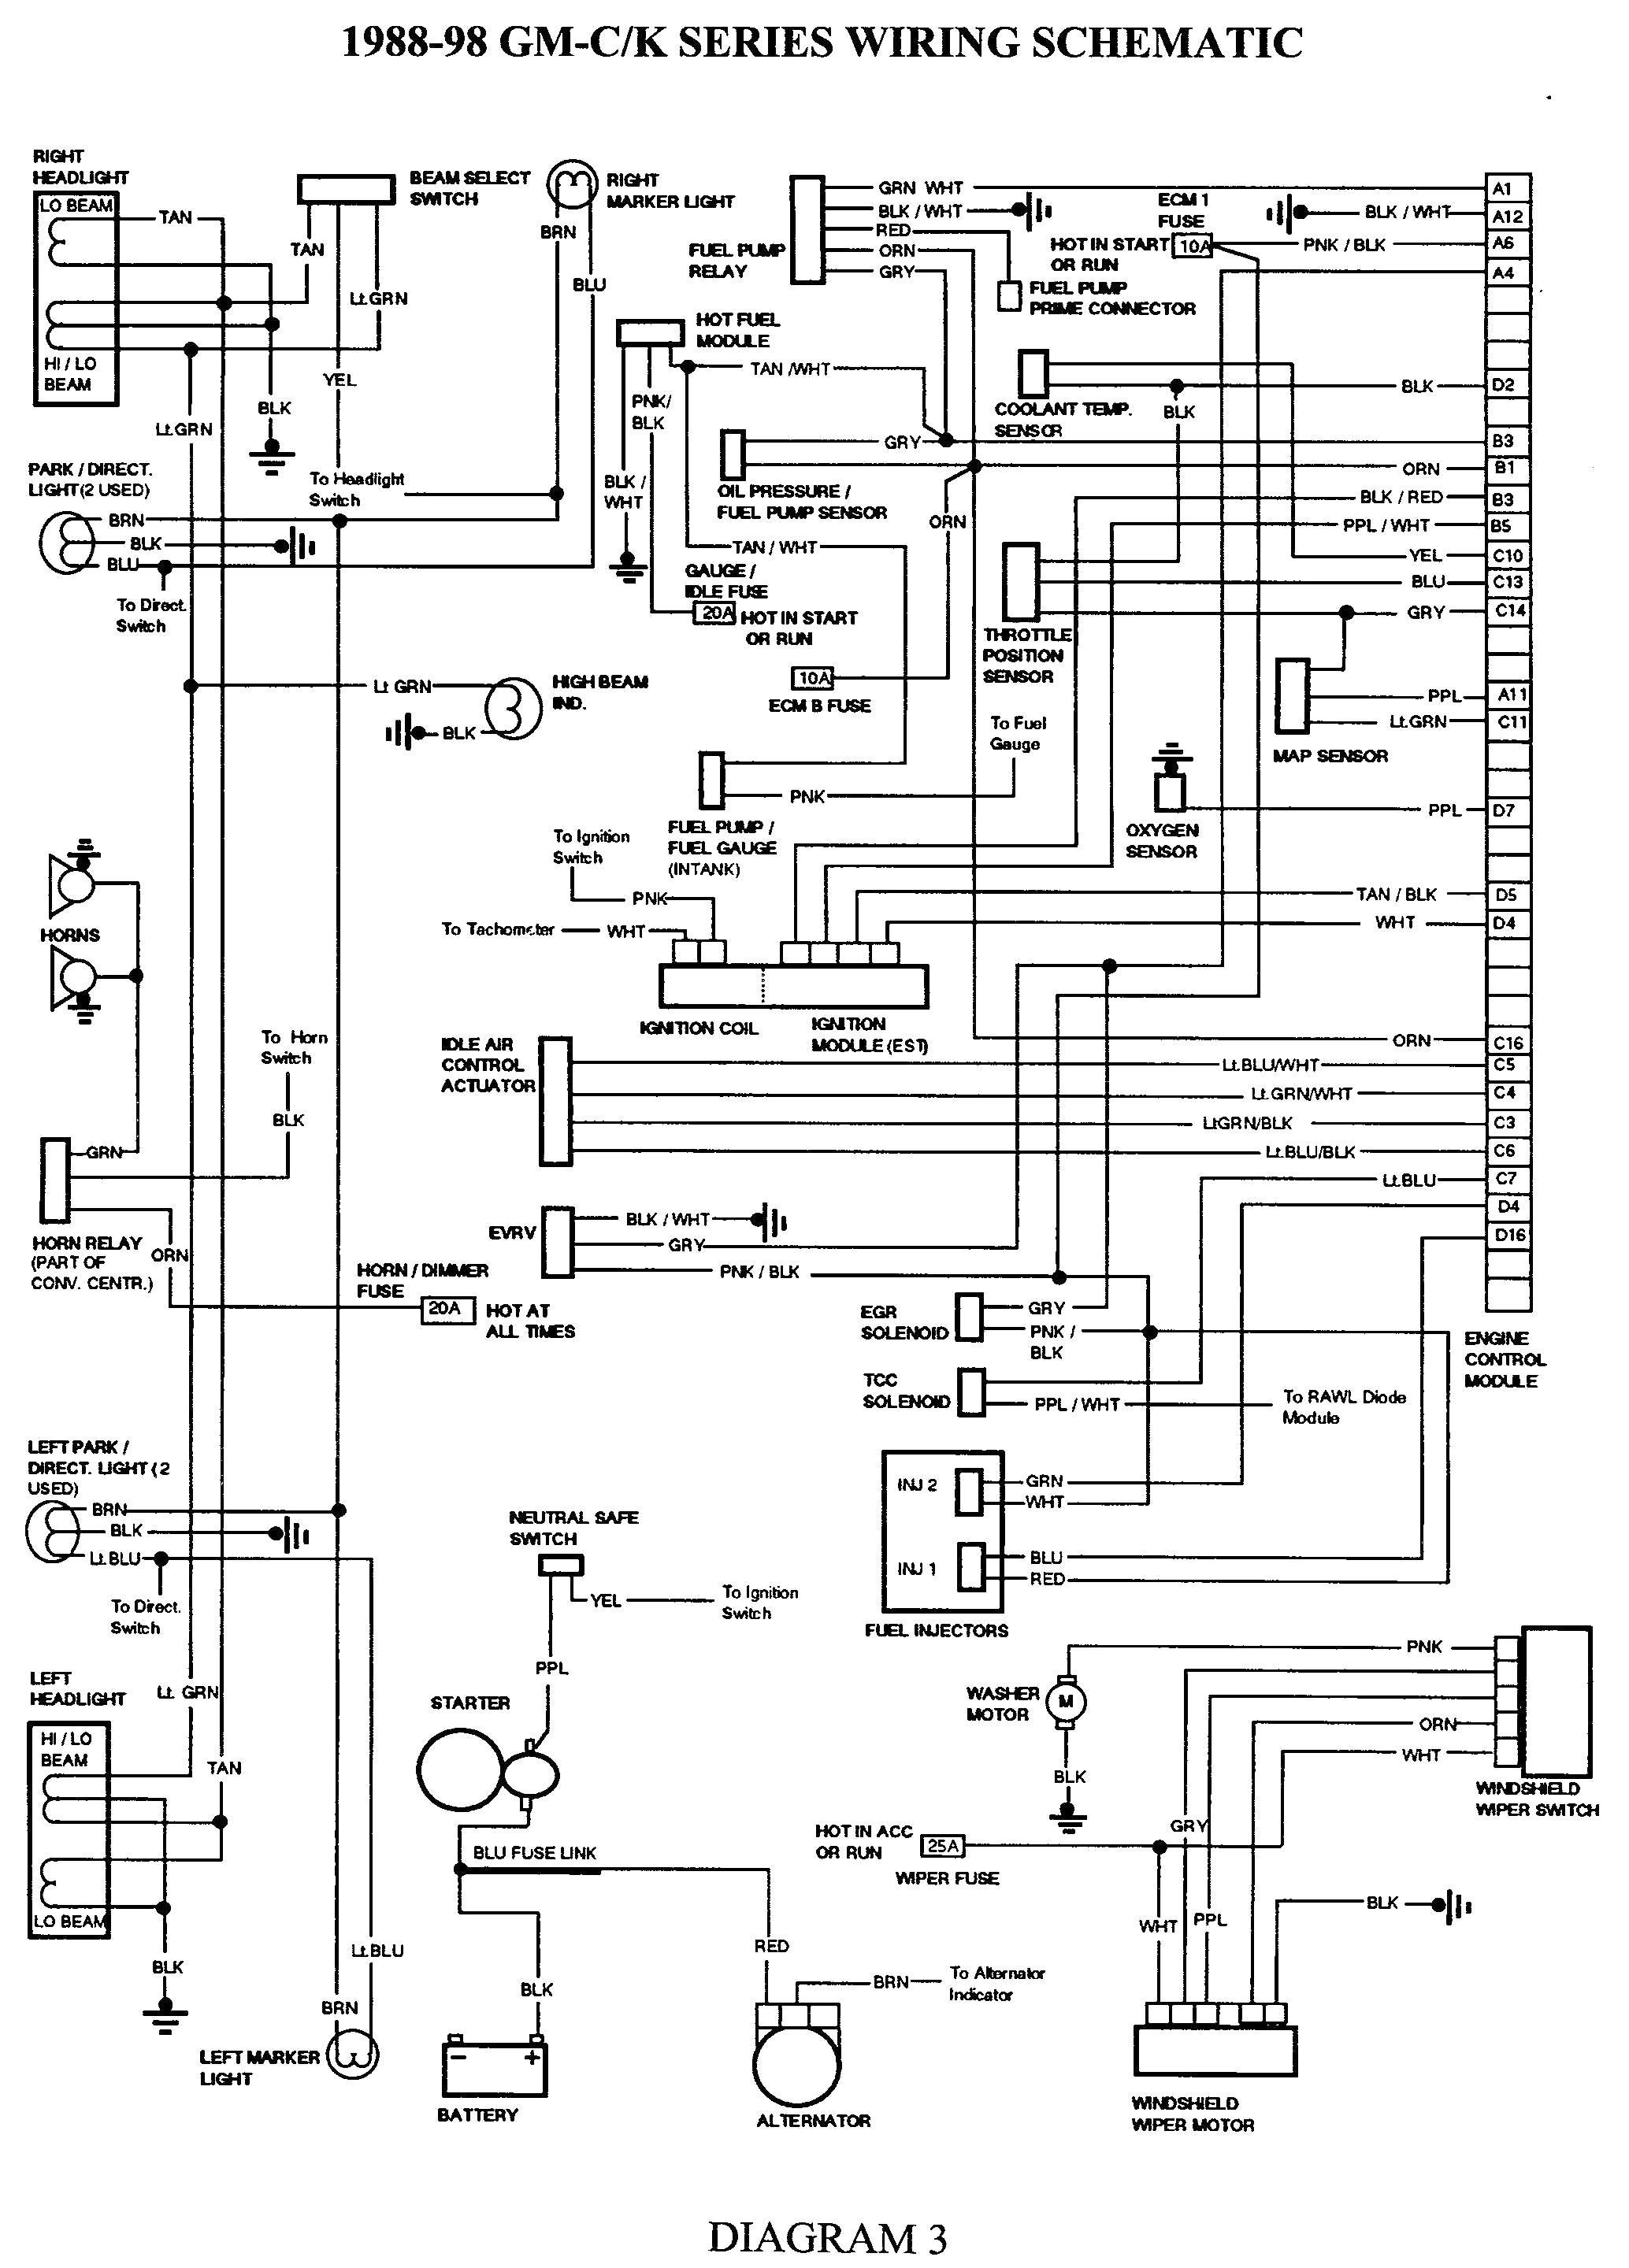 painless wiring switch panel diagram gallery | elektroschaltplan, gmc truck,  nissan pathfinder  pinterest